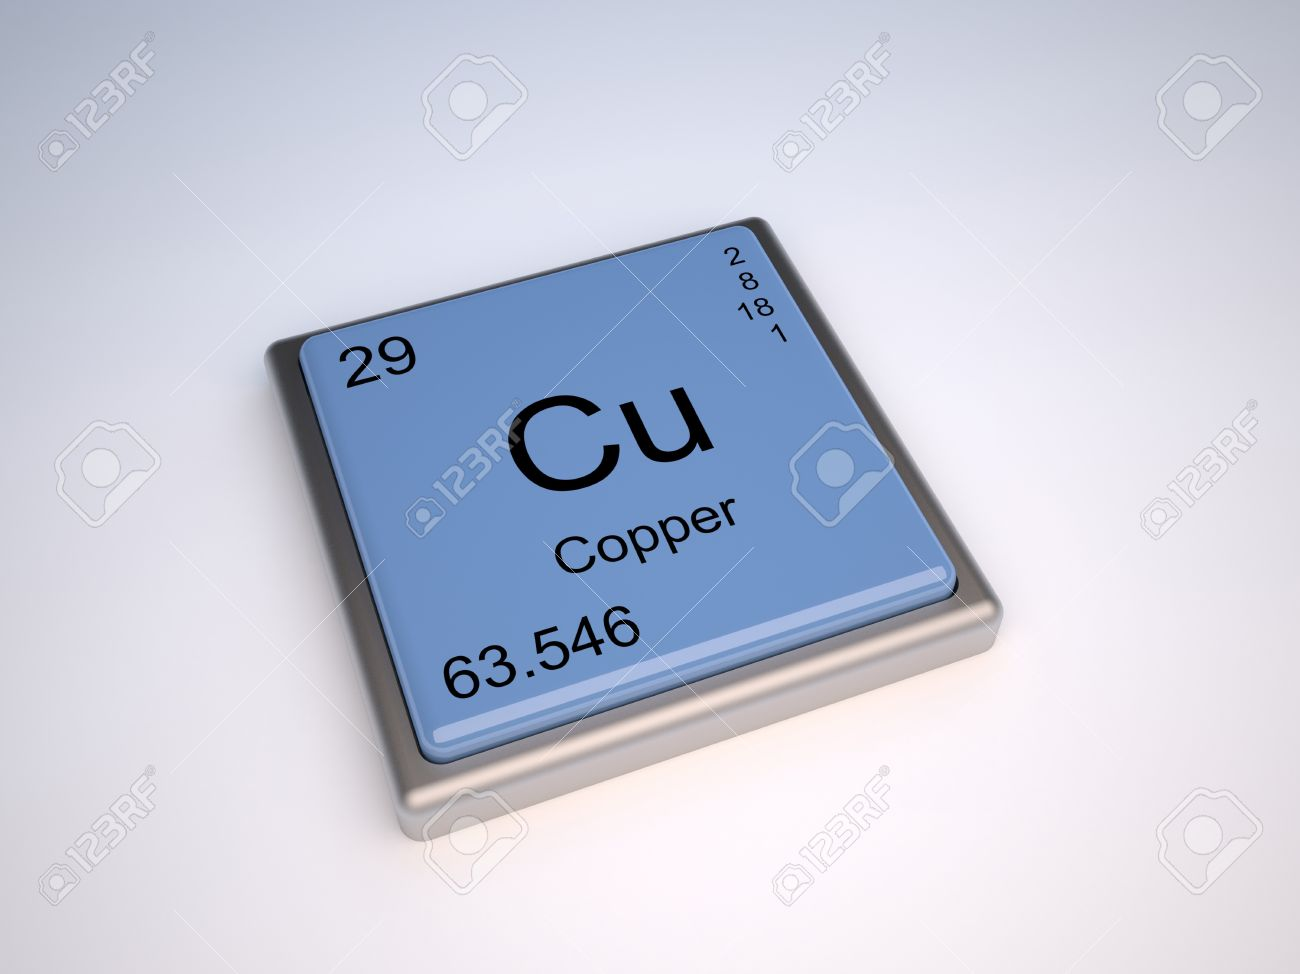 Copper chemical element of the periodic table with symbol cu stock copper chemical element of the periodic table with symbol cu stock photo 9257133 buycottarizona